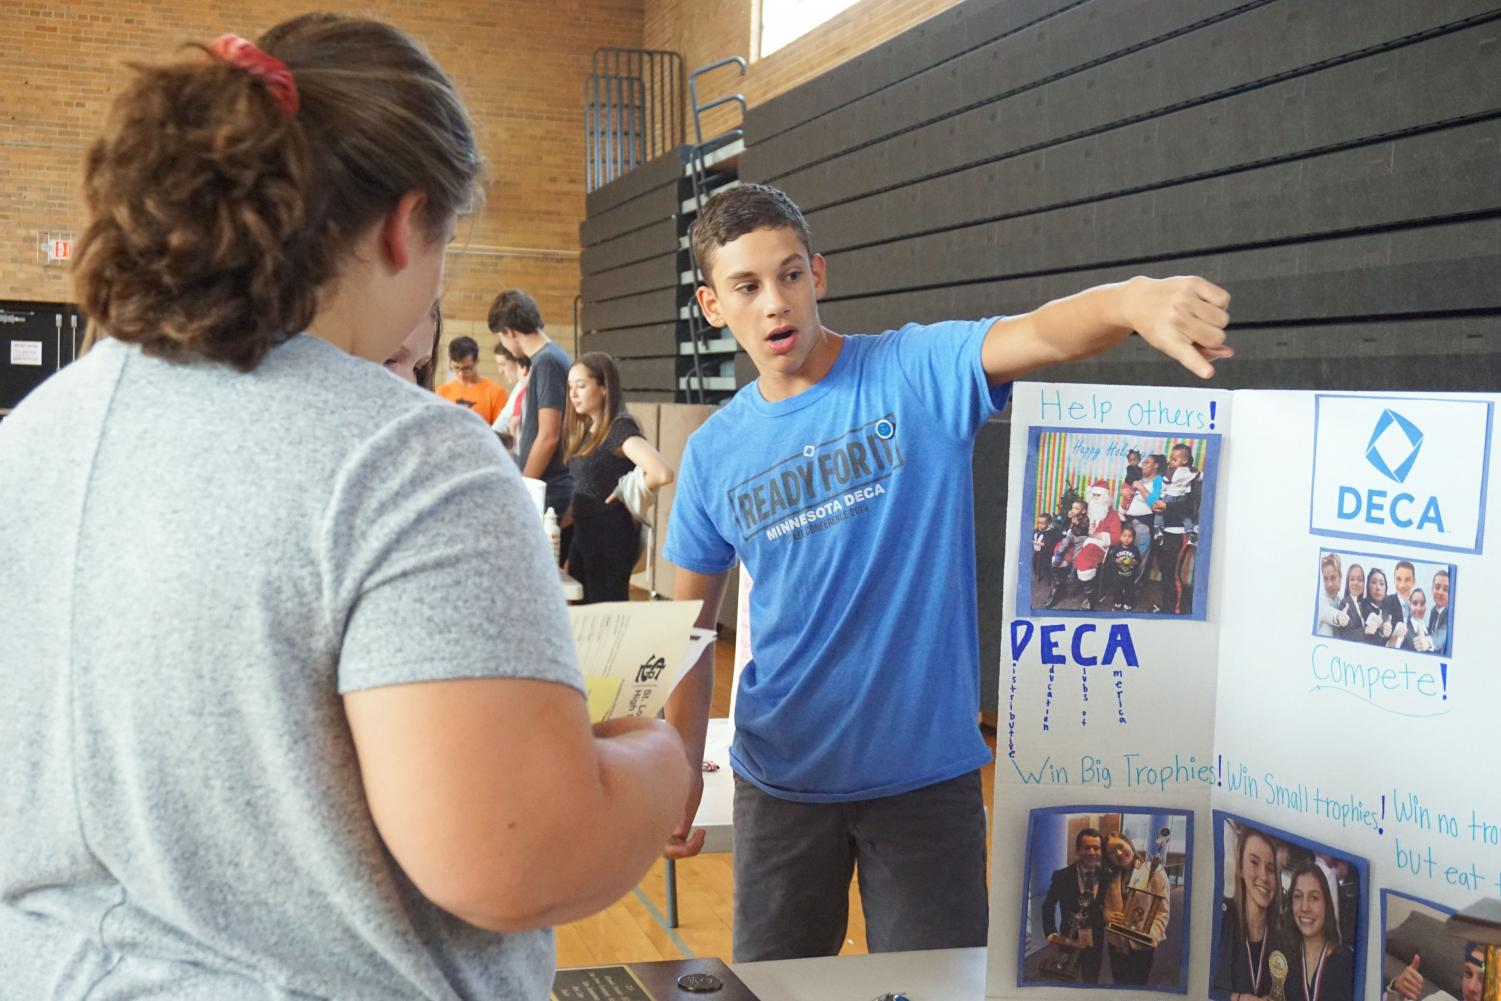 Junior+Koby+Davis+promotes+DECA+to+incoming+freshmen+at+the+activities+fair+Aug.+28.+Freshmen+also+met+their+advisors%2C+learned+their+way+around+the+high+school%2C+and+found+their+classrooms.